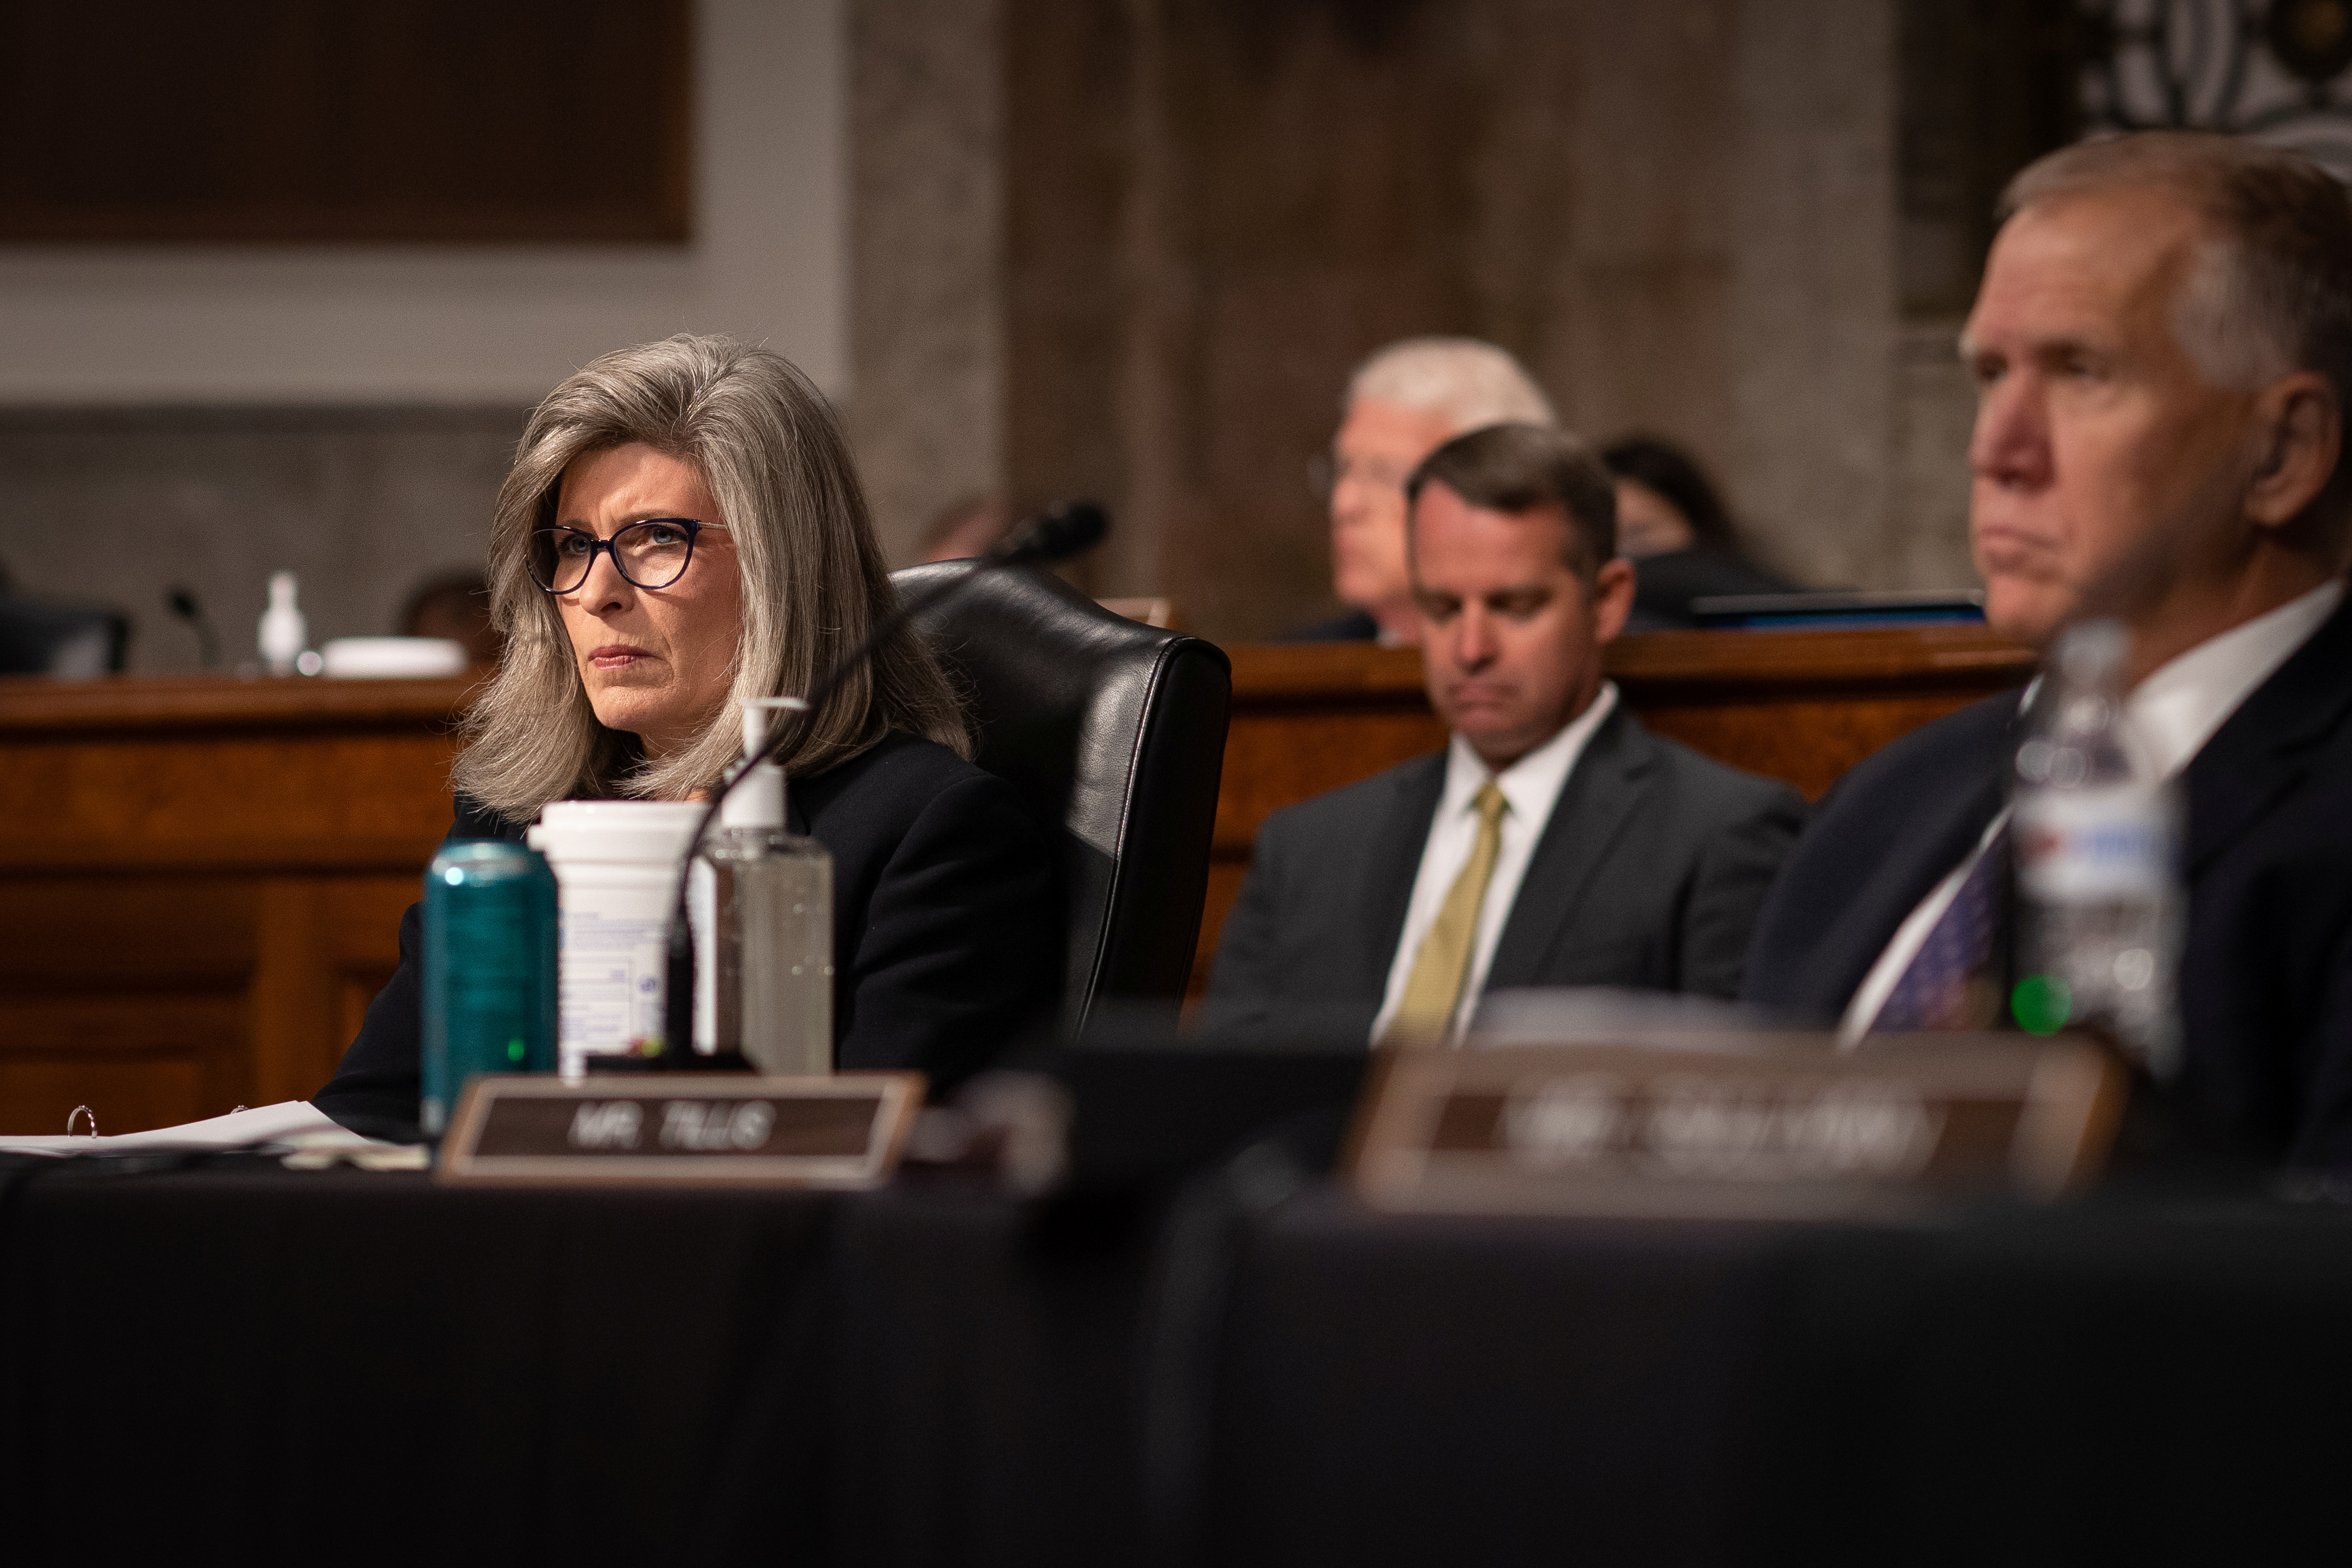 U.S. Senator Joni Ernst (R-IA) listens during a Senate Armed Services Committee hearing on the conclusion of military operations in Afghanistan and plans for future counterterrorism operations, on Capitol Hill in Washington, U.S., September 28, 2021. Sarahbeth Maney/Pool via REUTERS